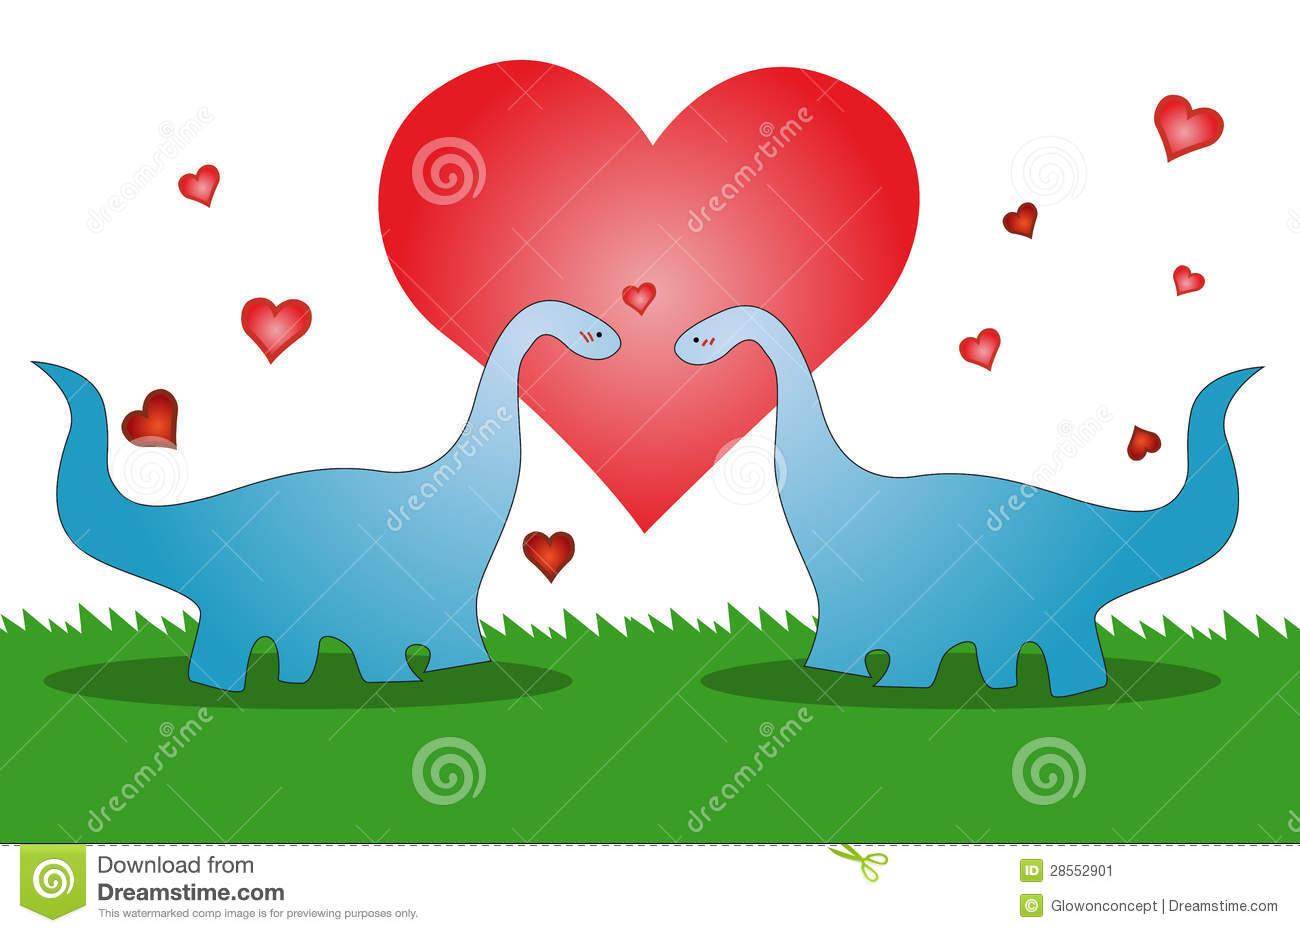 Happy Valentines Day Animation Image